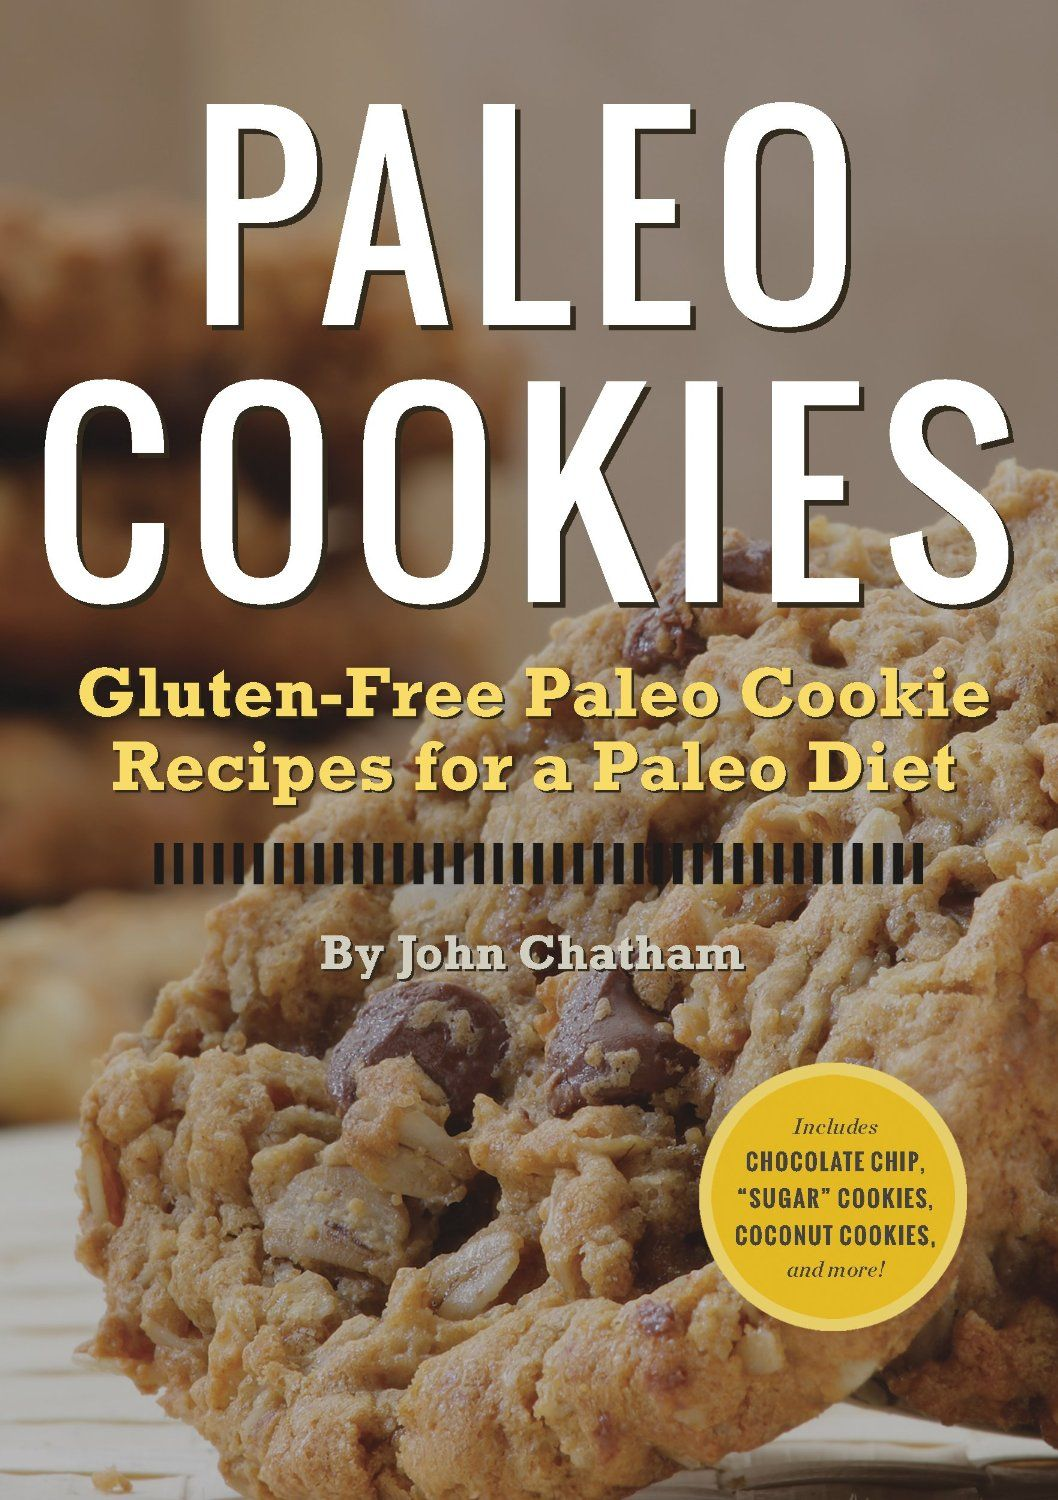 Paleo Cookies: Gluten-Free Paleo Cookie Recipes for a Paleo Diet  by John Chatham ($4.81)